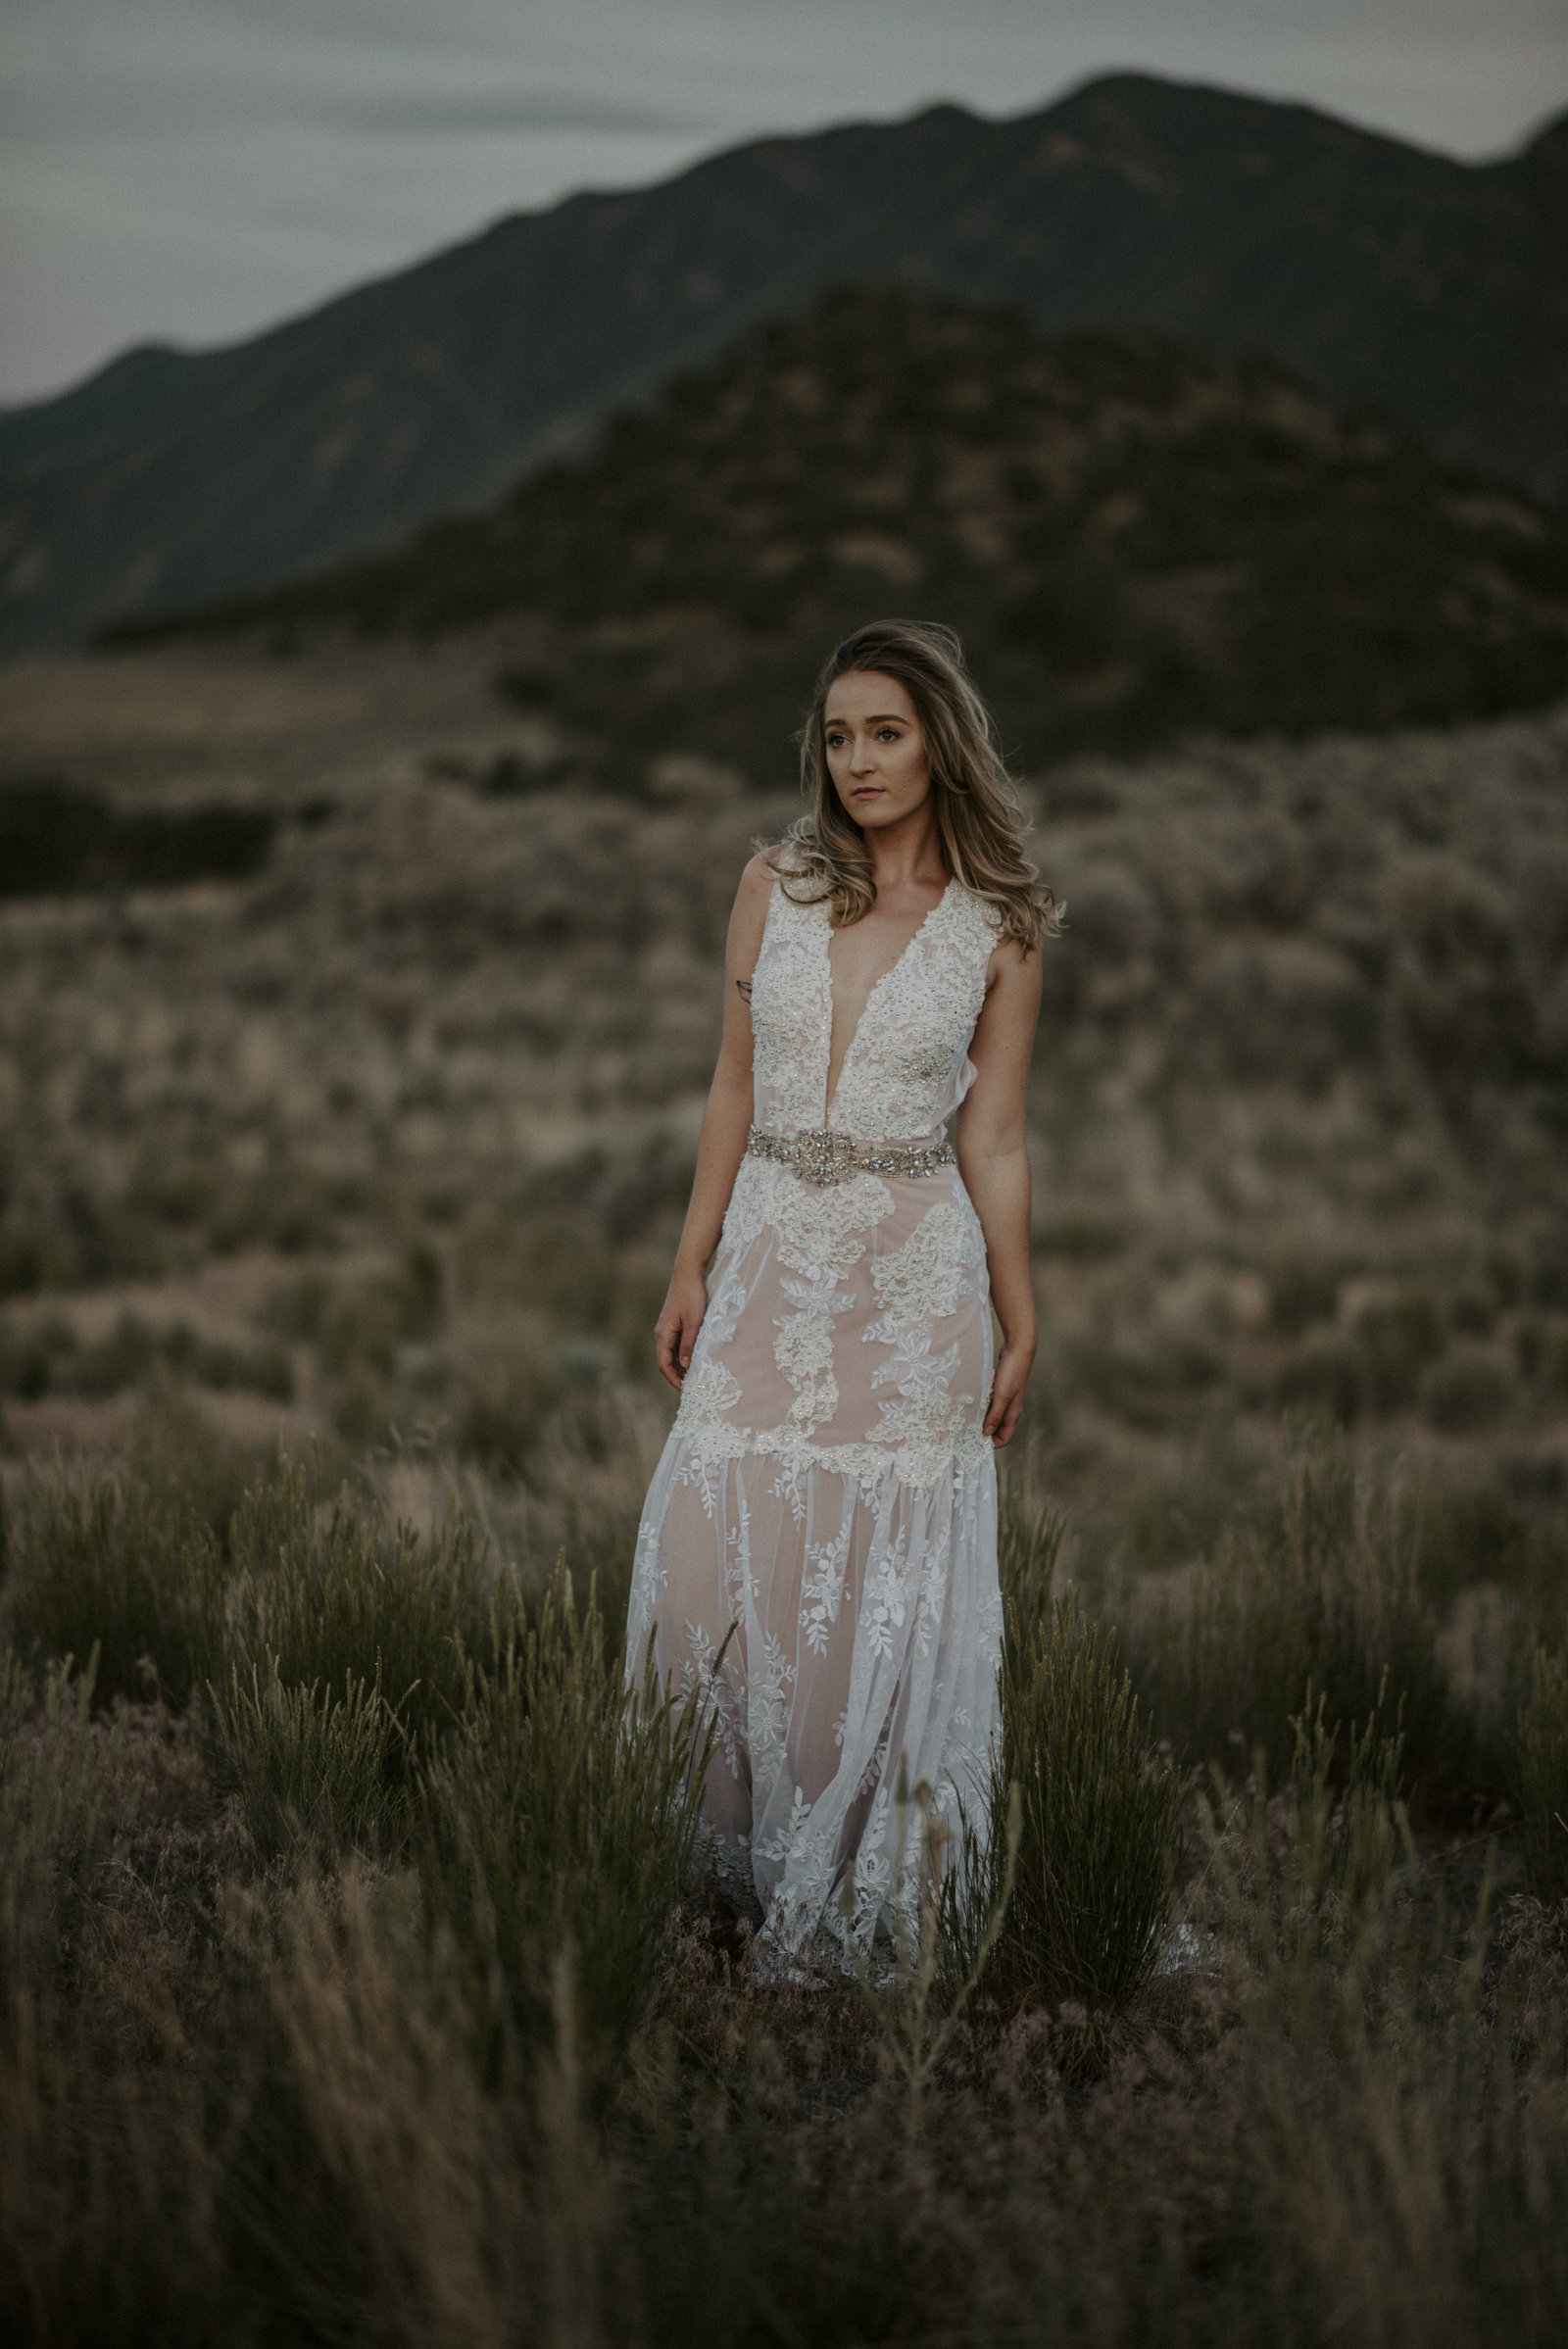 moab_las_vegas_new_mexico_zion_dead_horse_Colorado_grand_junction_wedding_elopement_photographer119